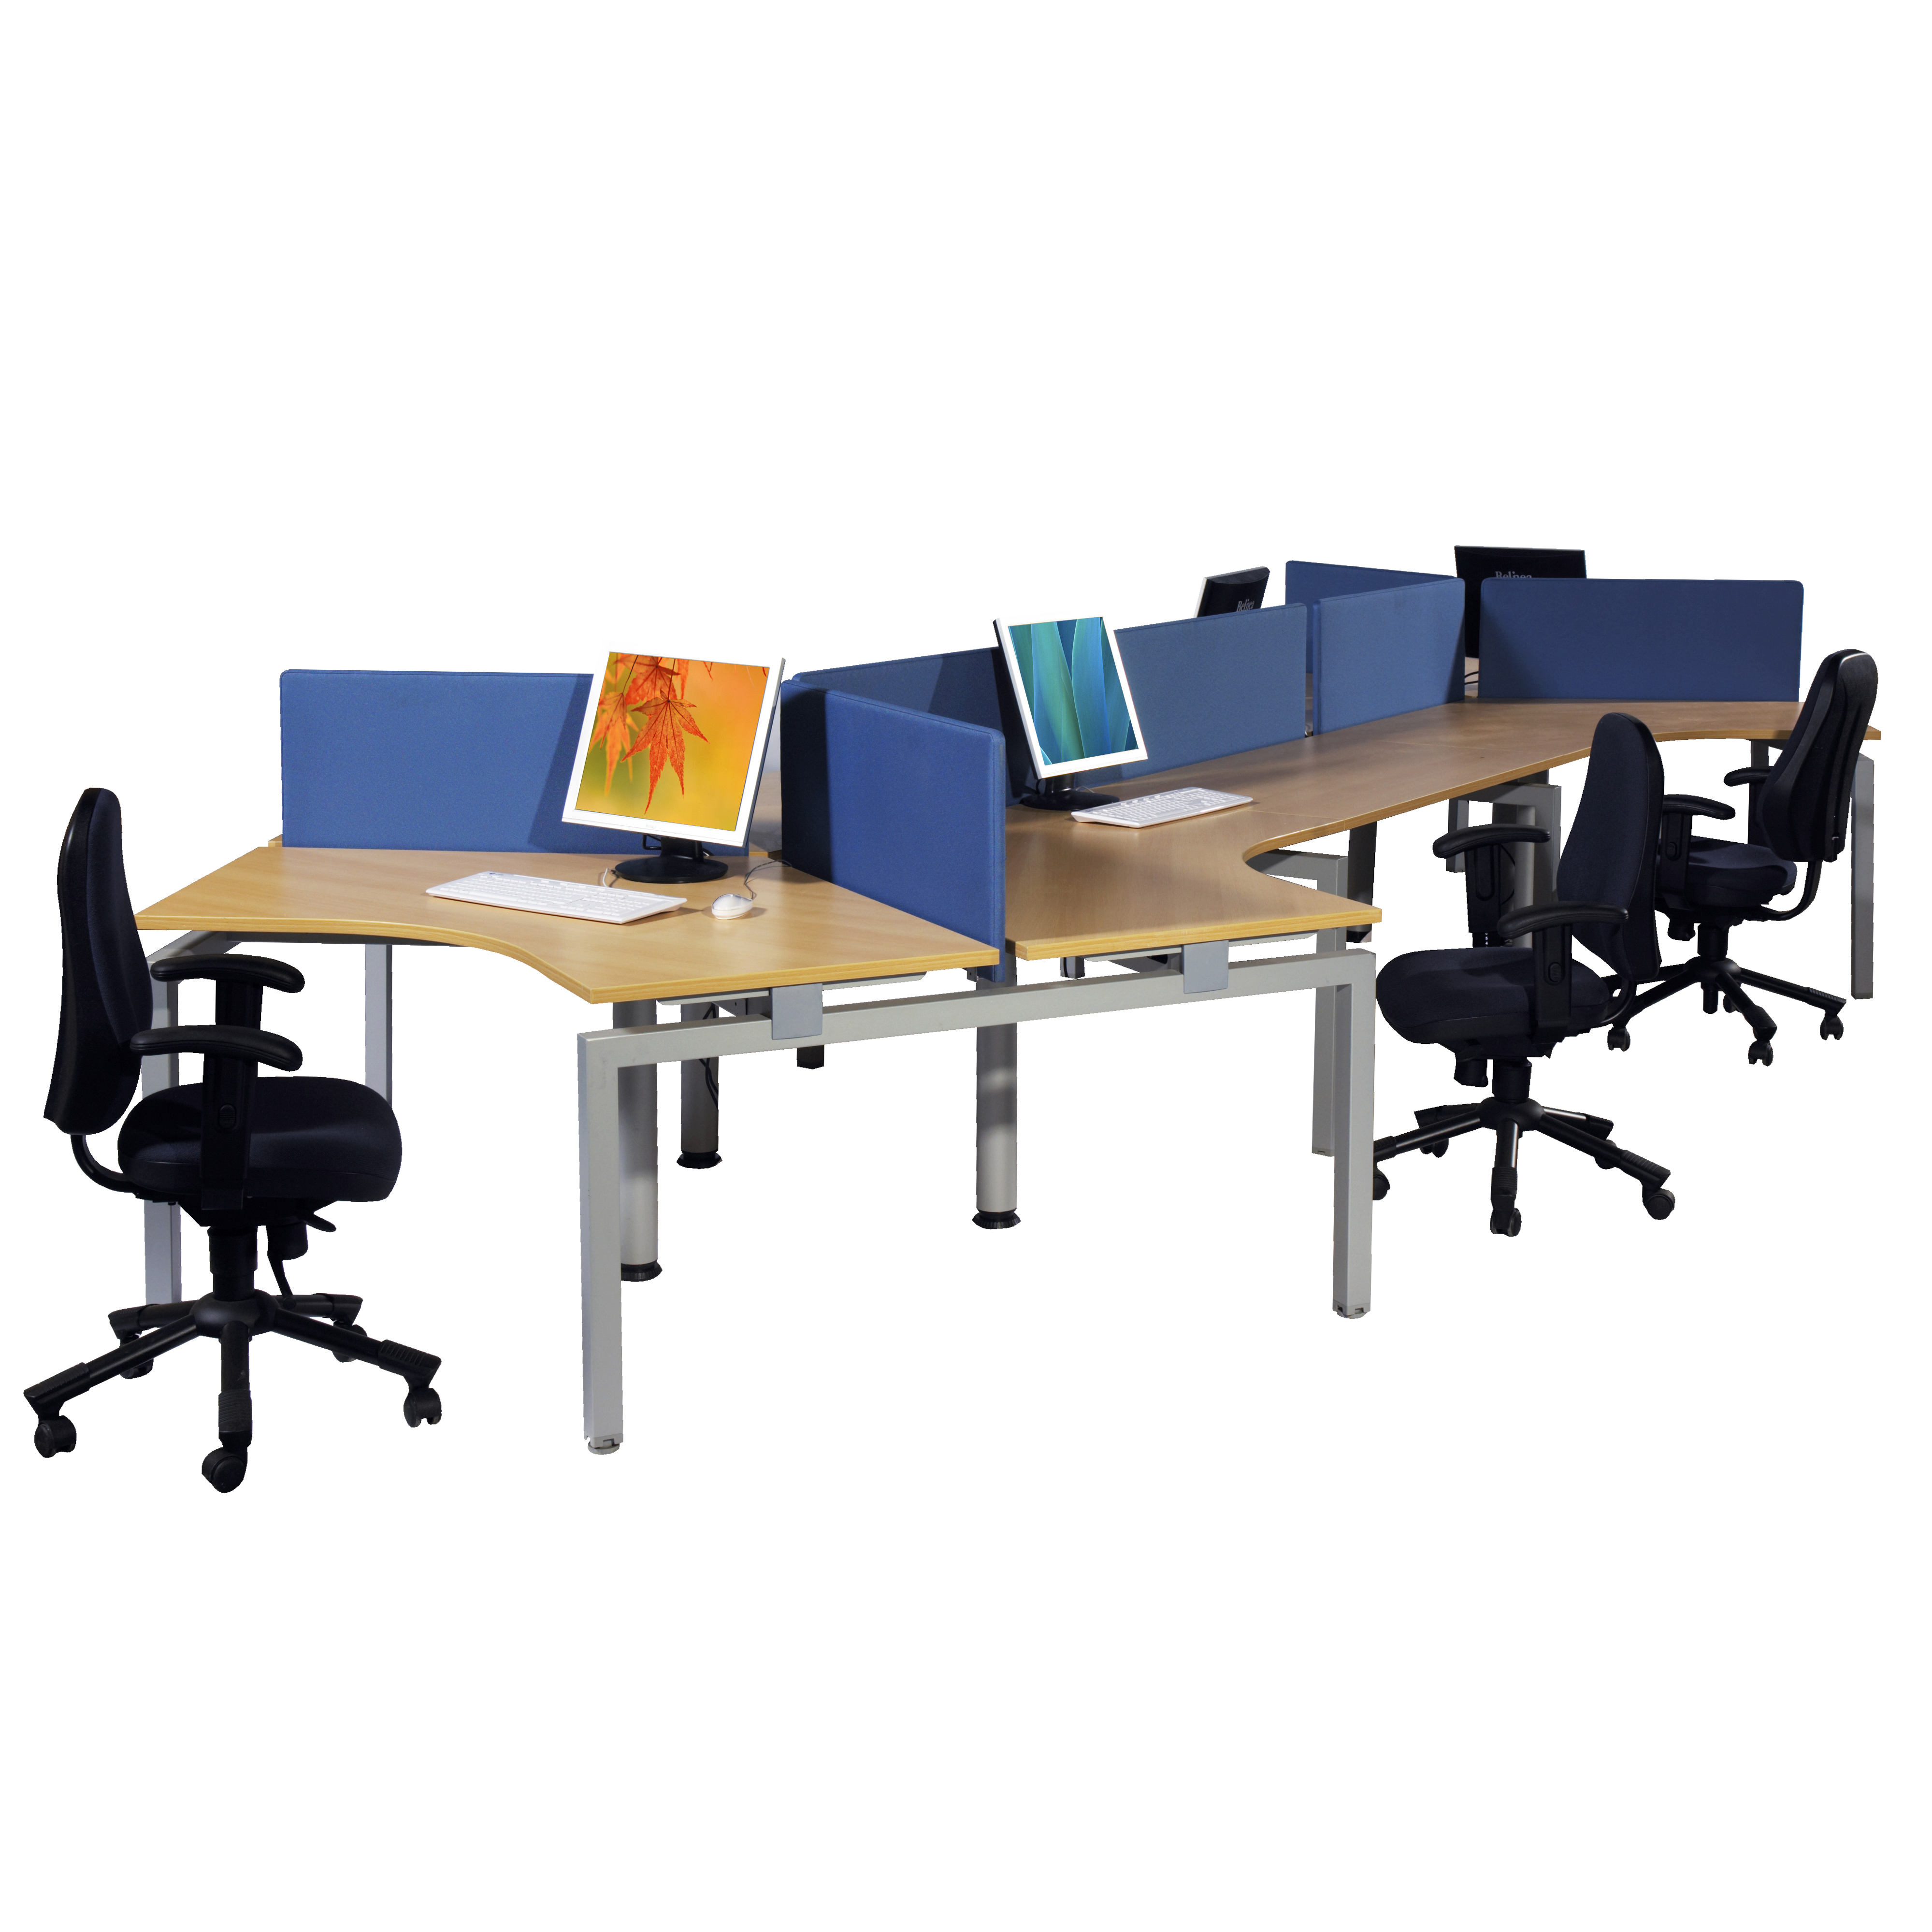 Bench Profile   Large Open Plan Office With Desk Height Screens And Swivel  Chairs.